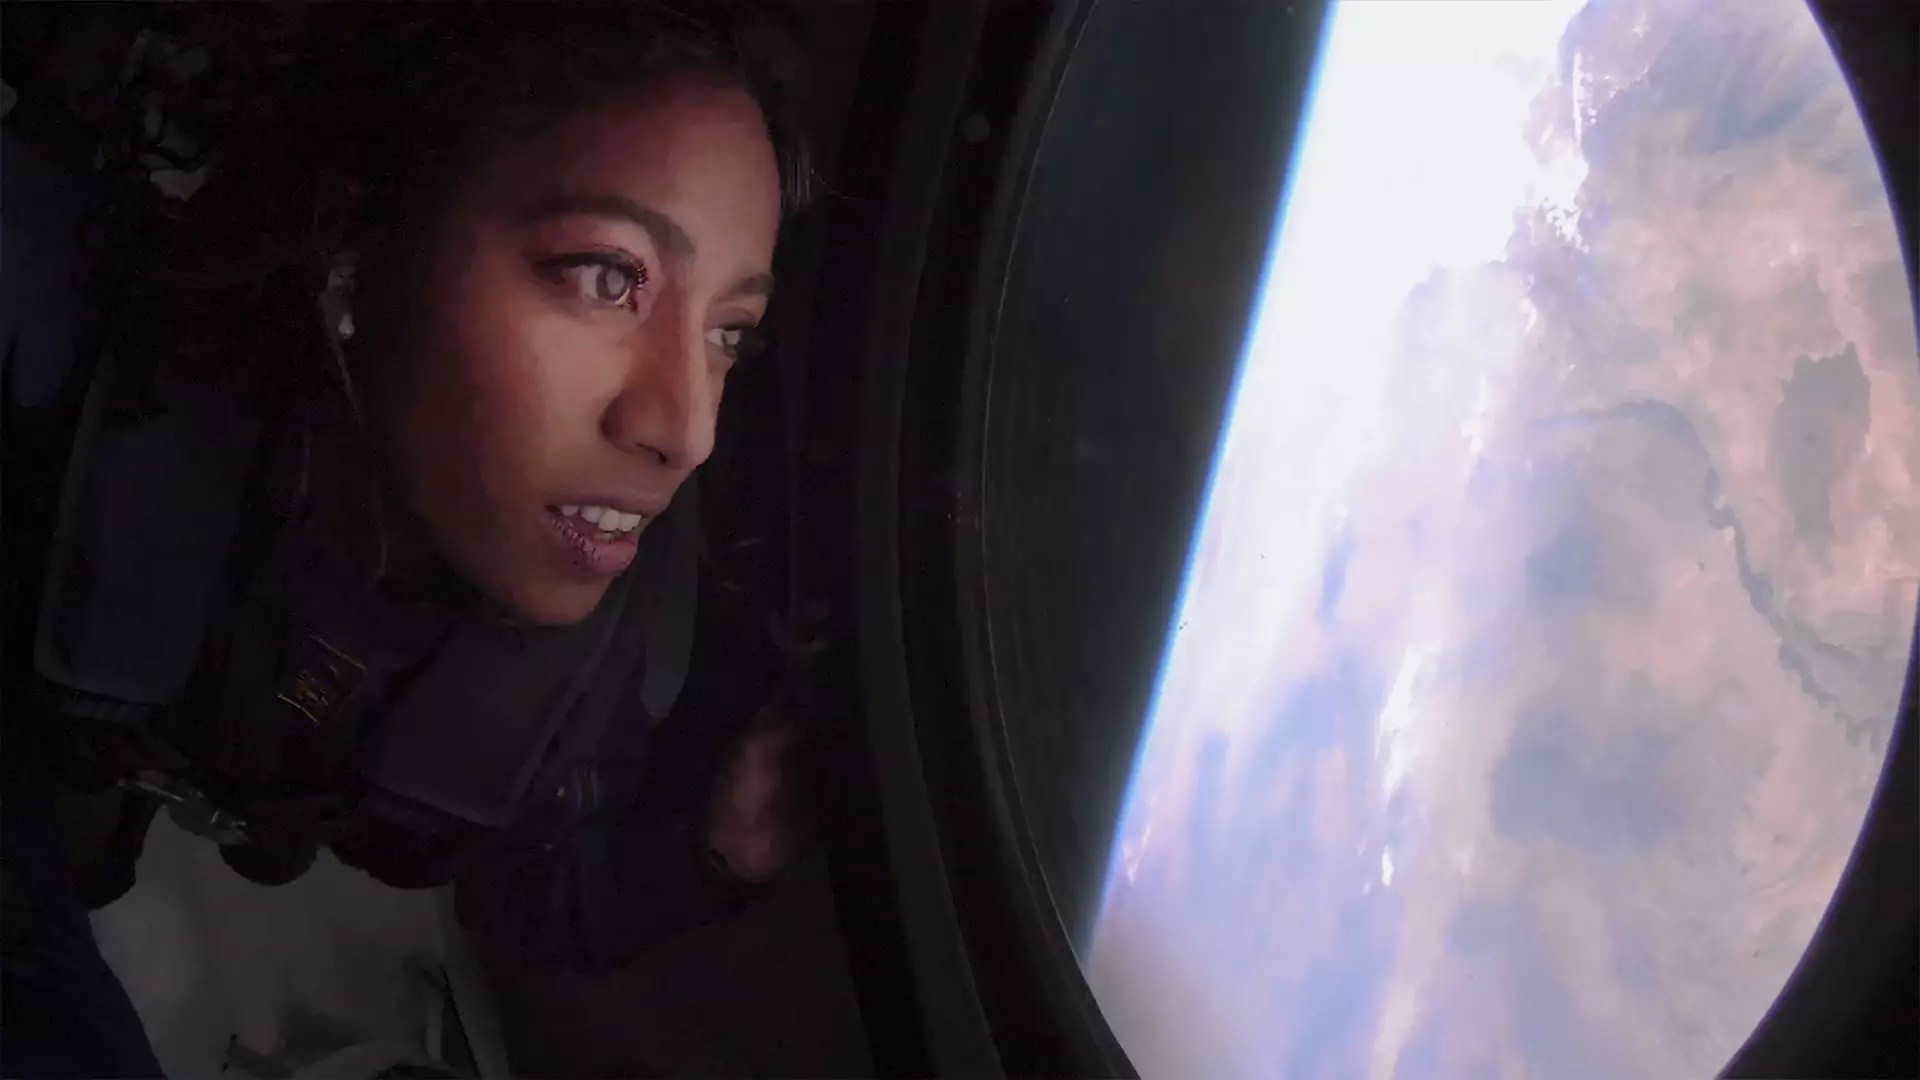 A woman looks out a window at Earth from the Virgin Galactic